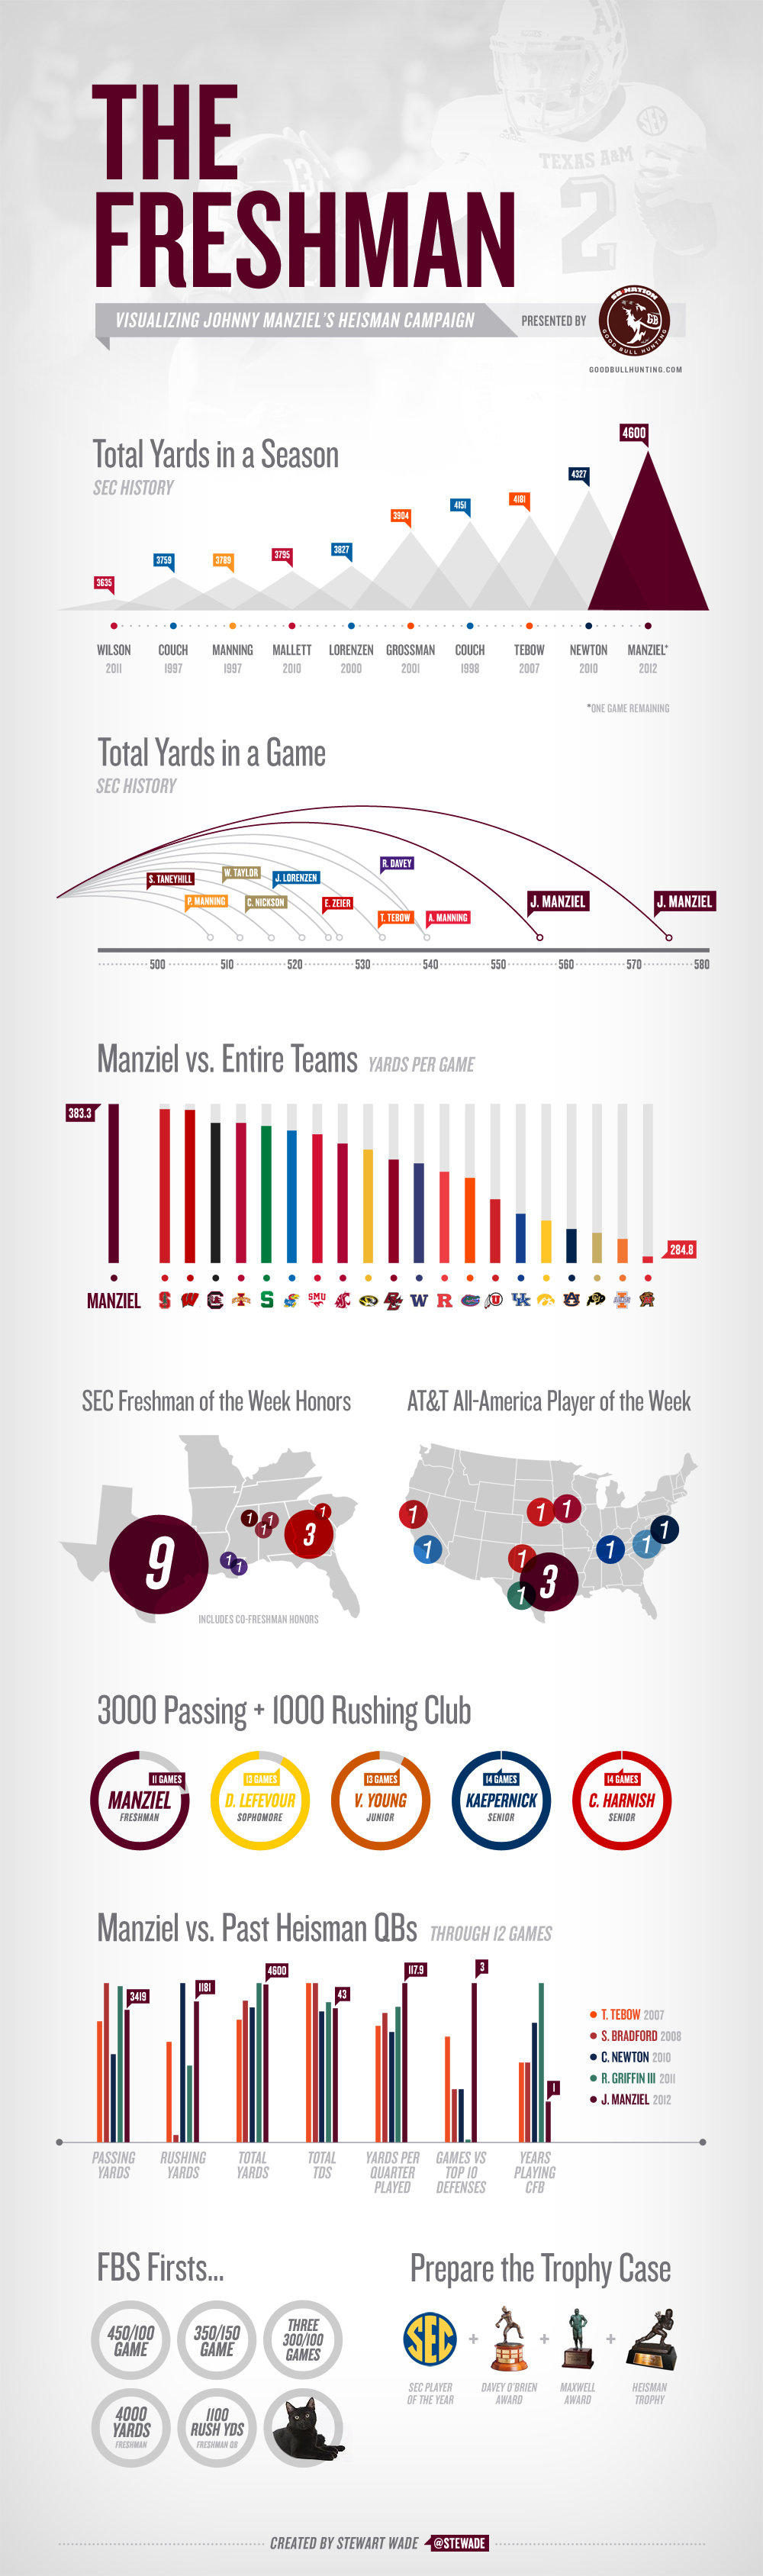 Johnny Manziel infographic